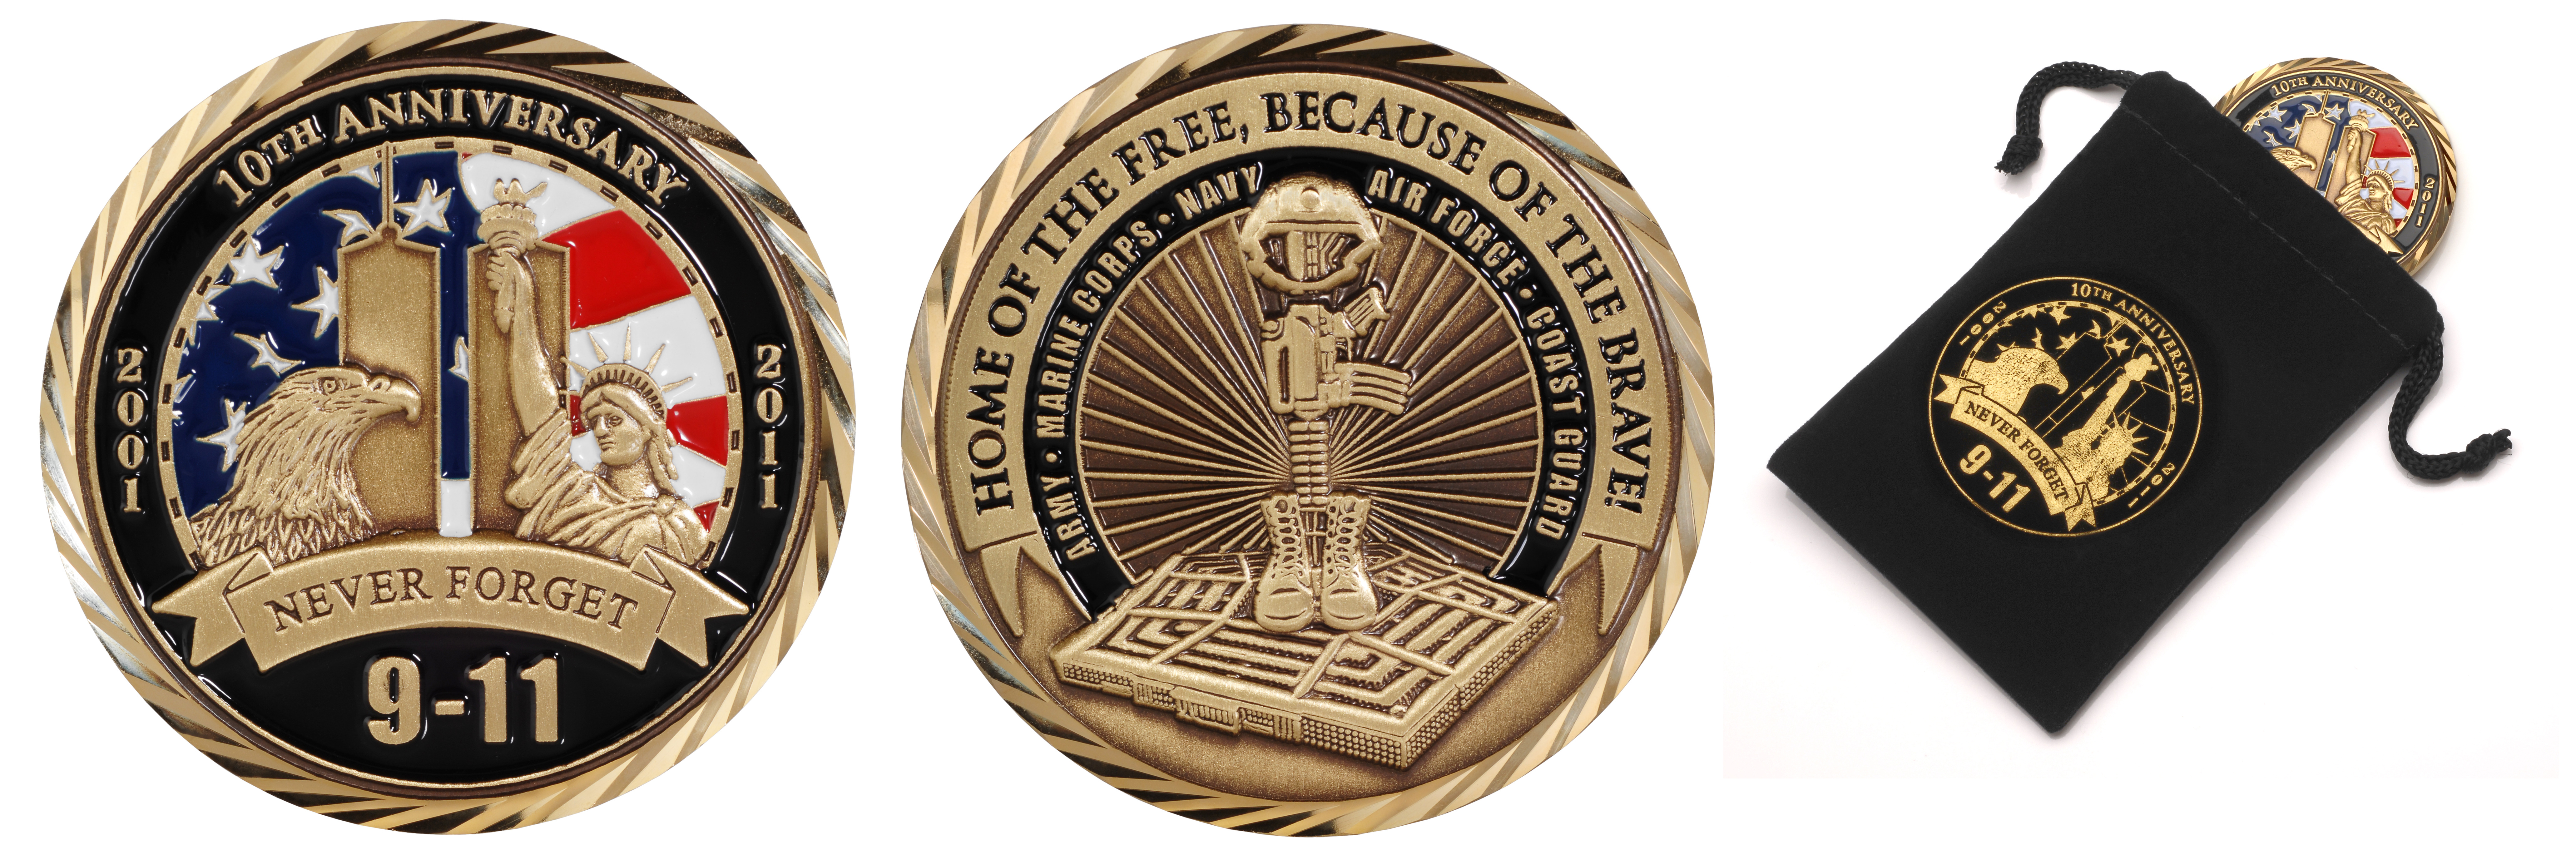 9 11 10th Anniversary Challenge Coin Raising 911 000 For